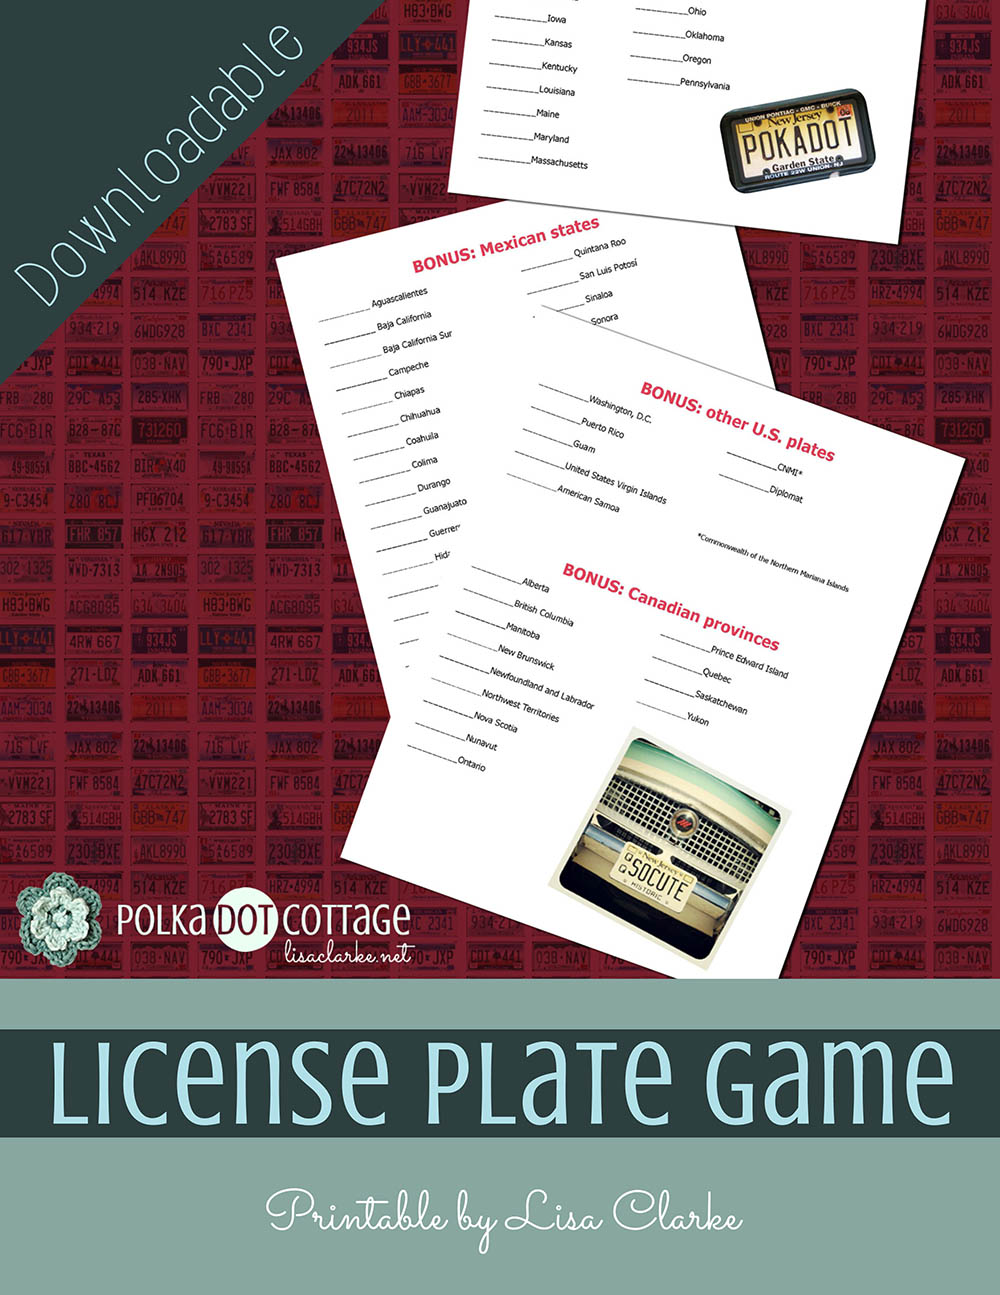 image about License Plate Game Printable known as License Plate Video game Printable